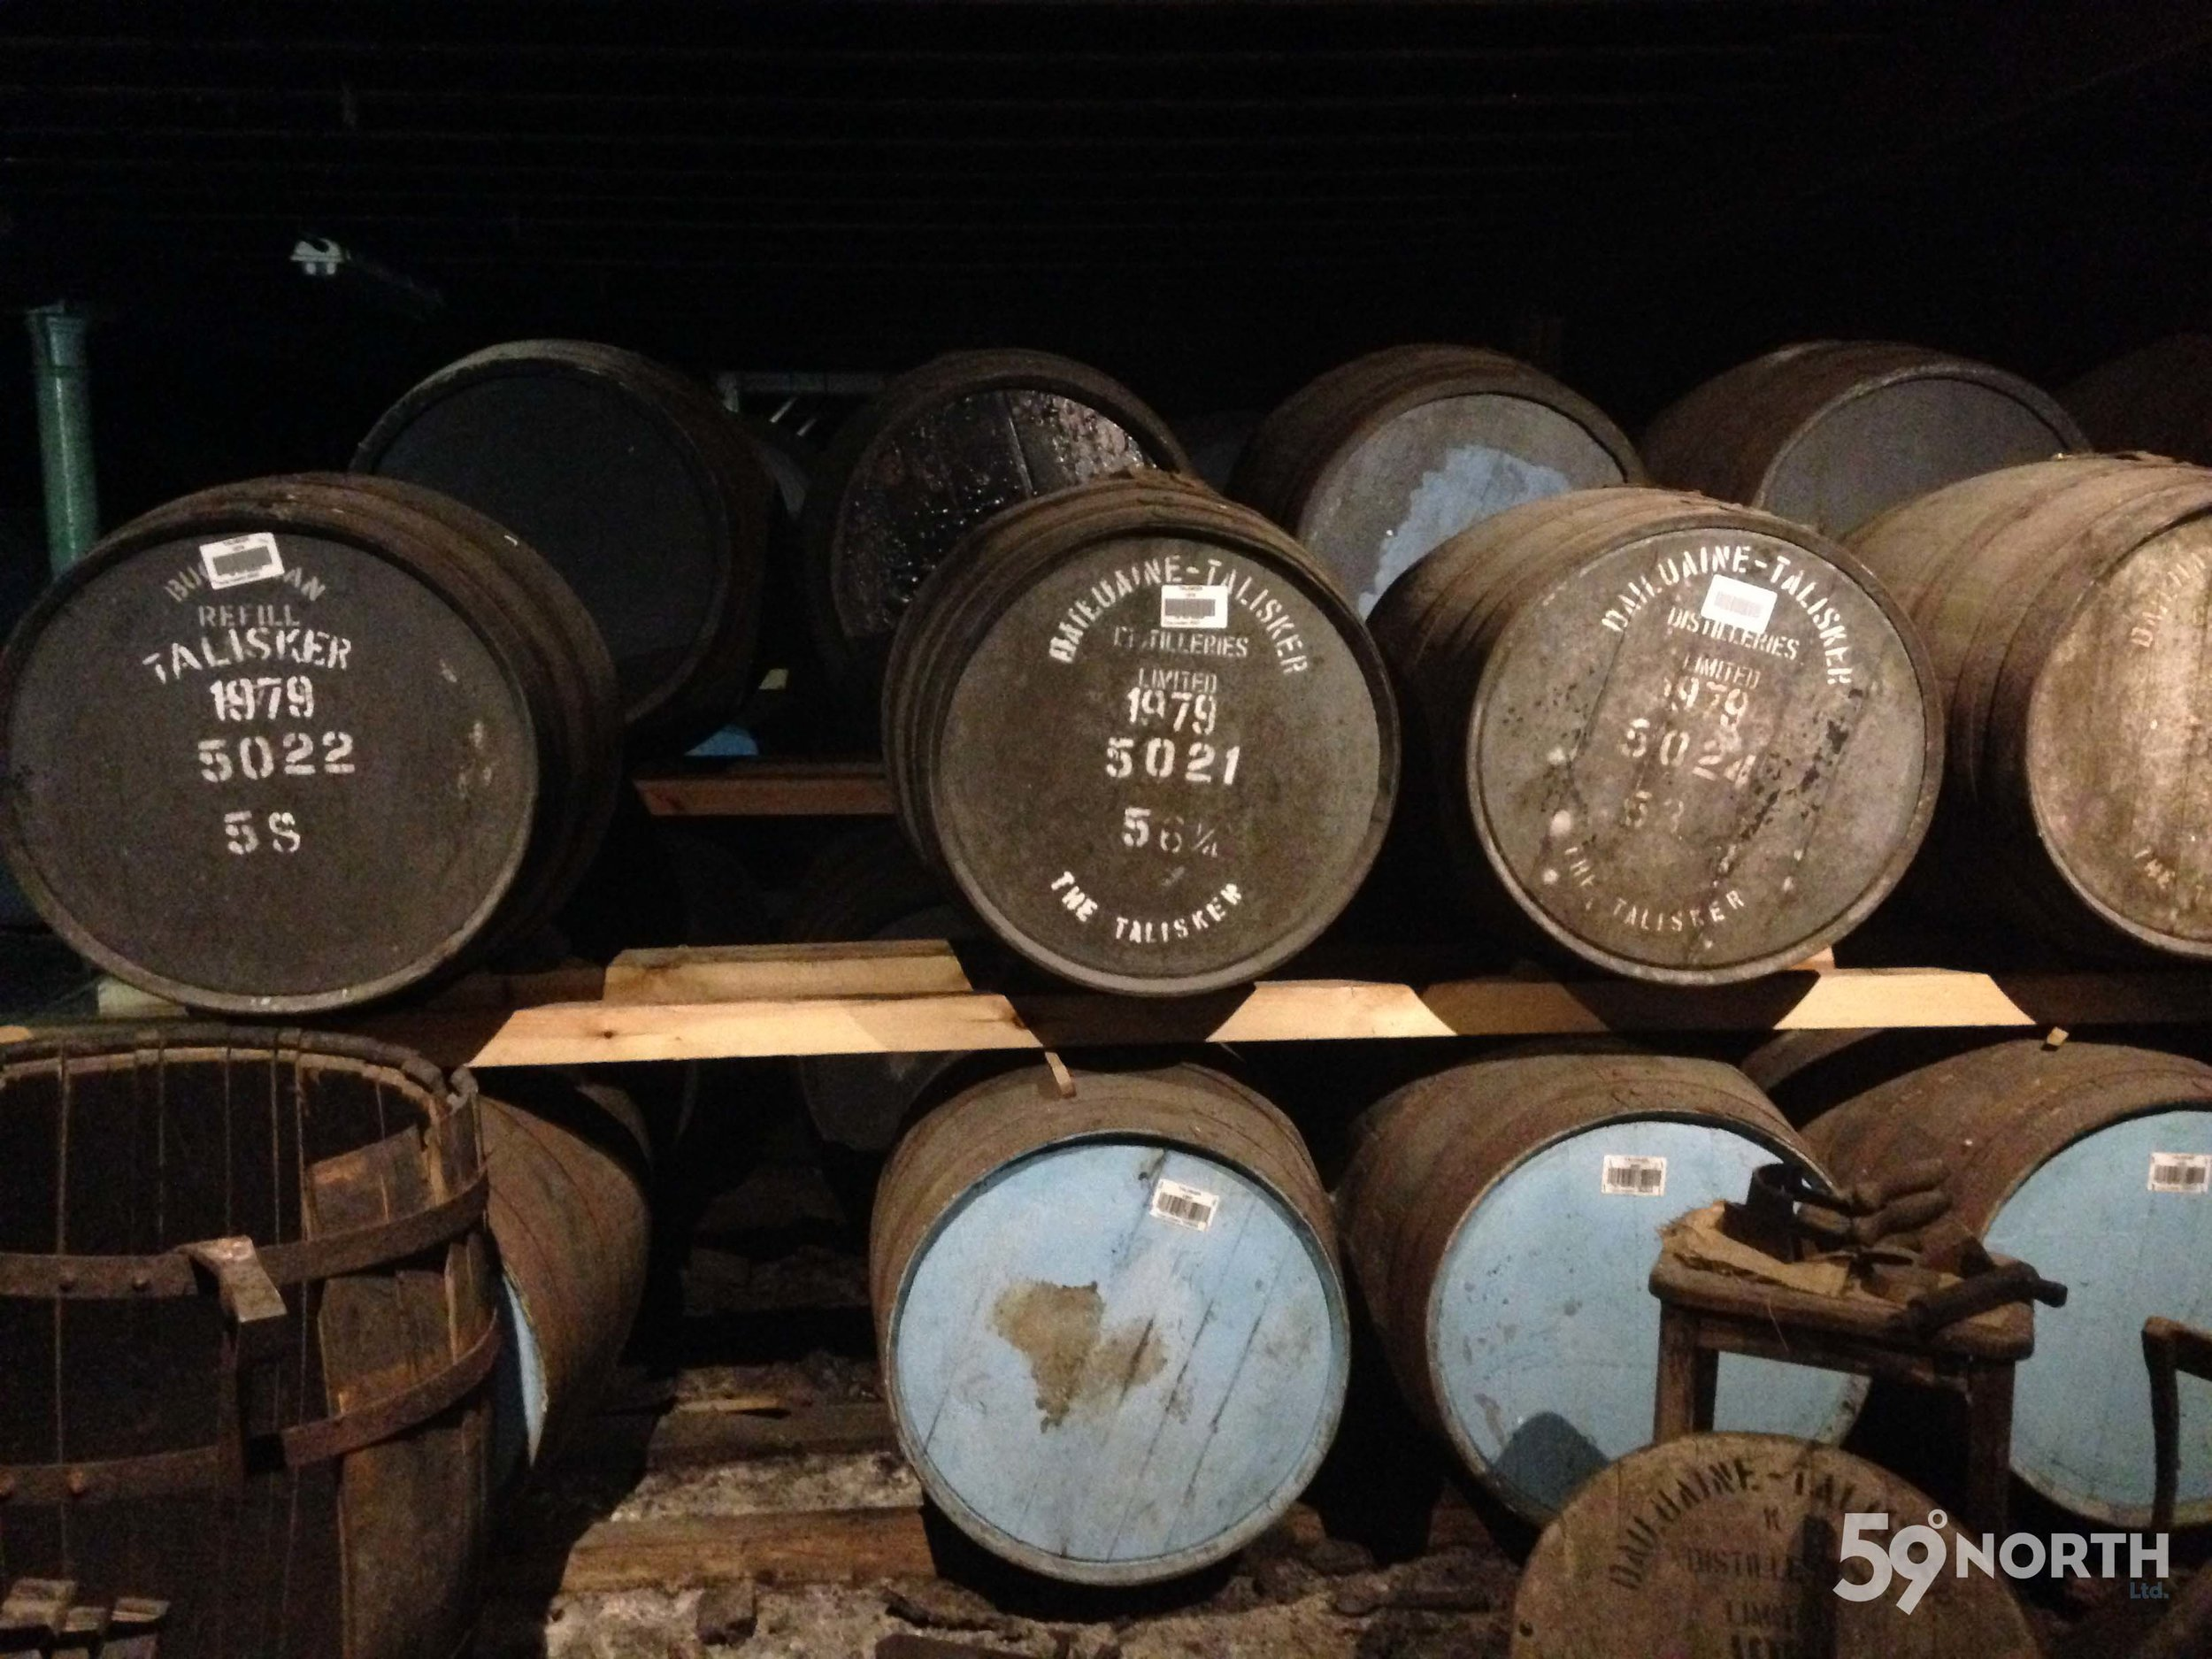 A visit to the Talisker distillery on Isle of Skye! Some very fine old barrels... Leg 8, 2017: Sweden to Scotland 59-north.com